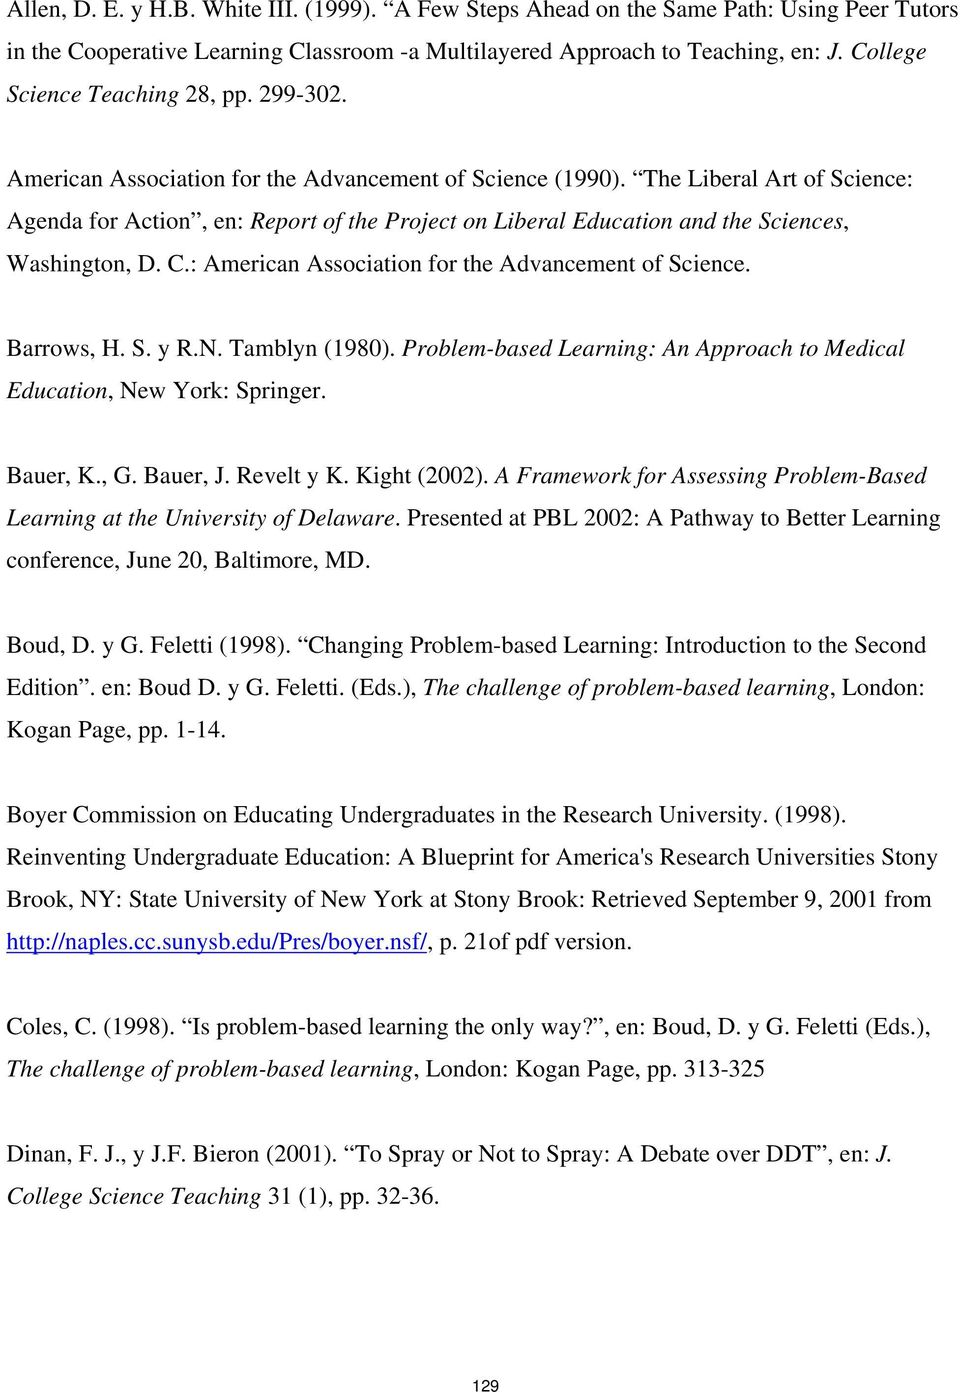 The Liberal Art of Science: Agenda for Action, en: Report of the Project on Liberal Education and the Sciences, Washington, D. C.: American Association for the Advancement of Science. Barrows, H. S. y R.